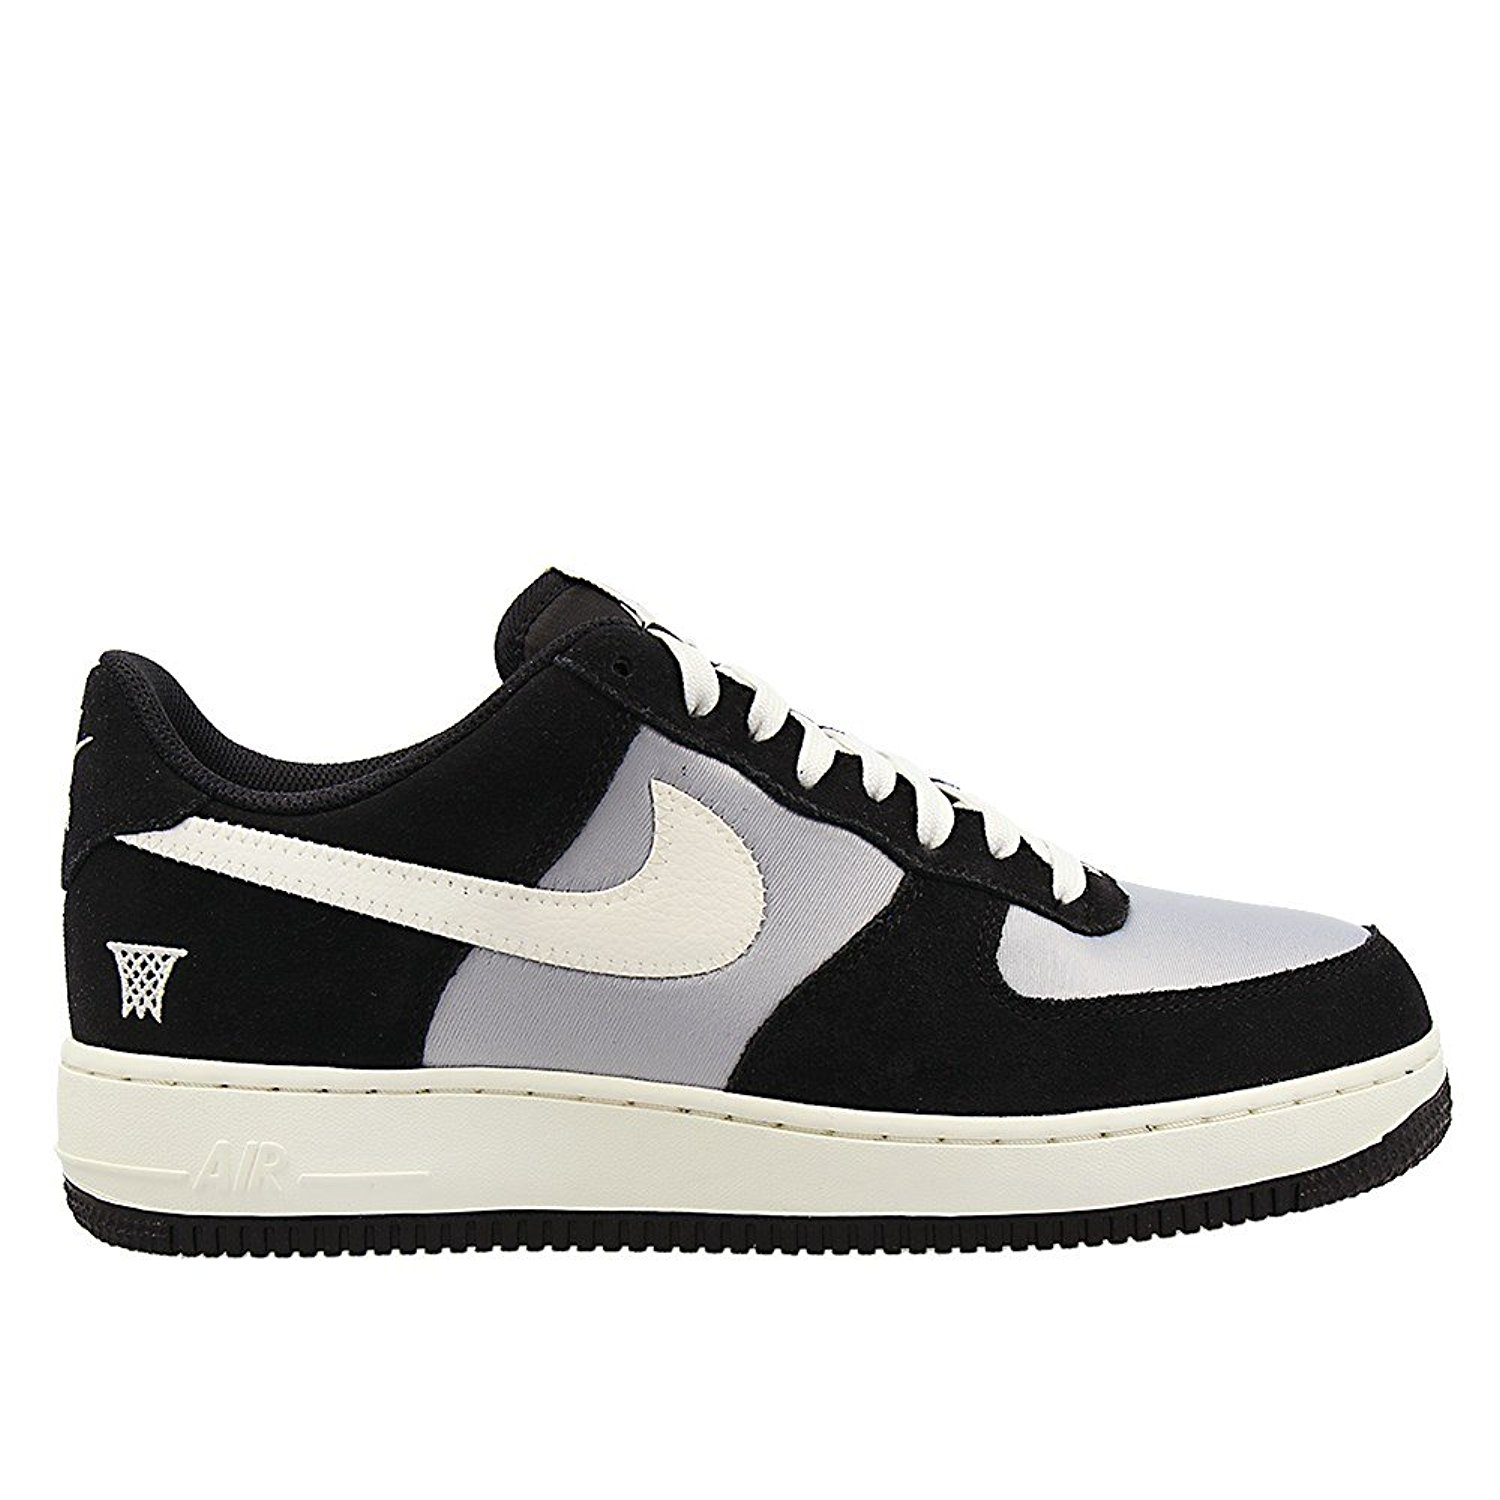 official photos 4ed07 b8810 Nike Mens Air Force 1 Low Casual Shoes - 820266 002 (10.5, Black